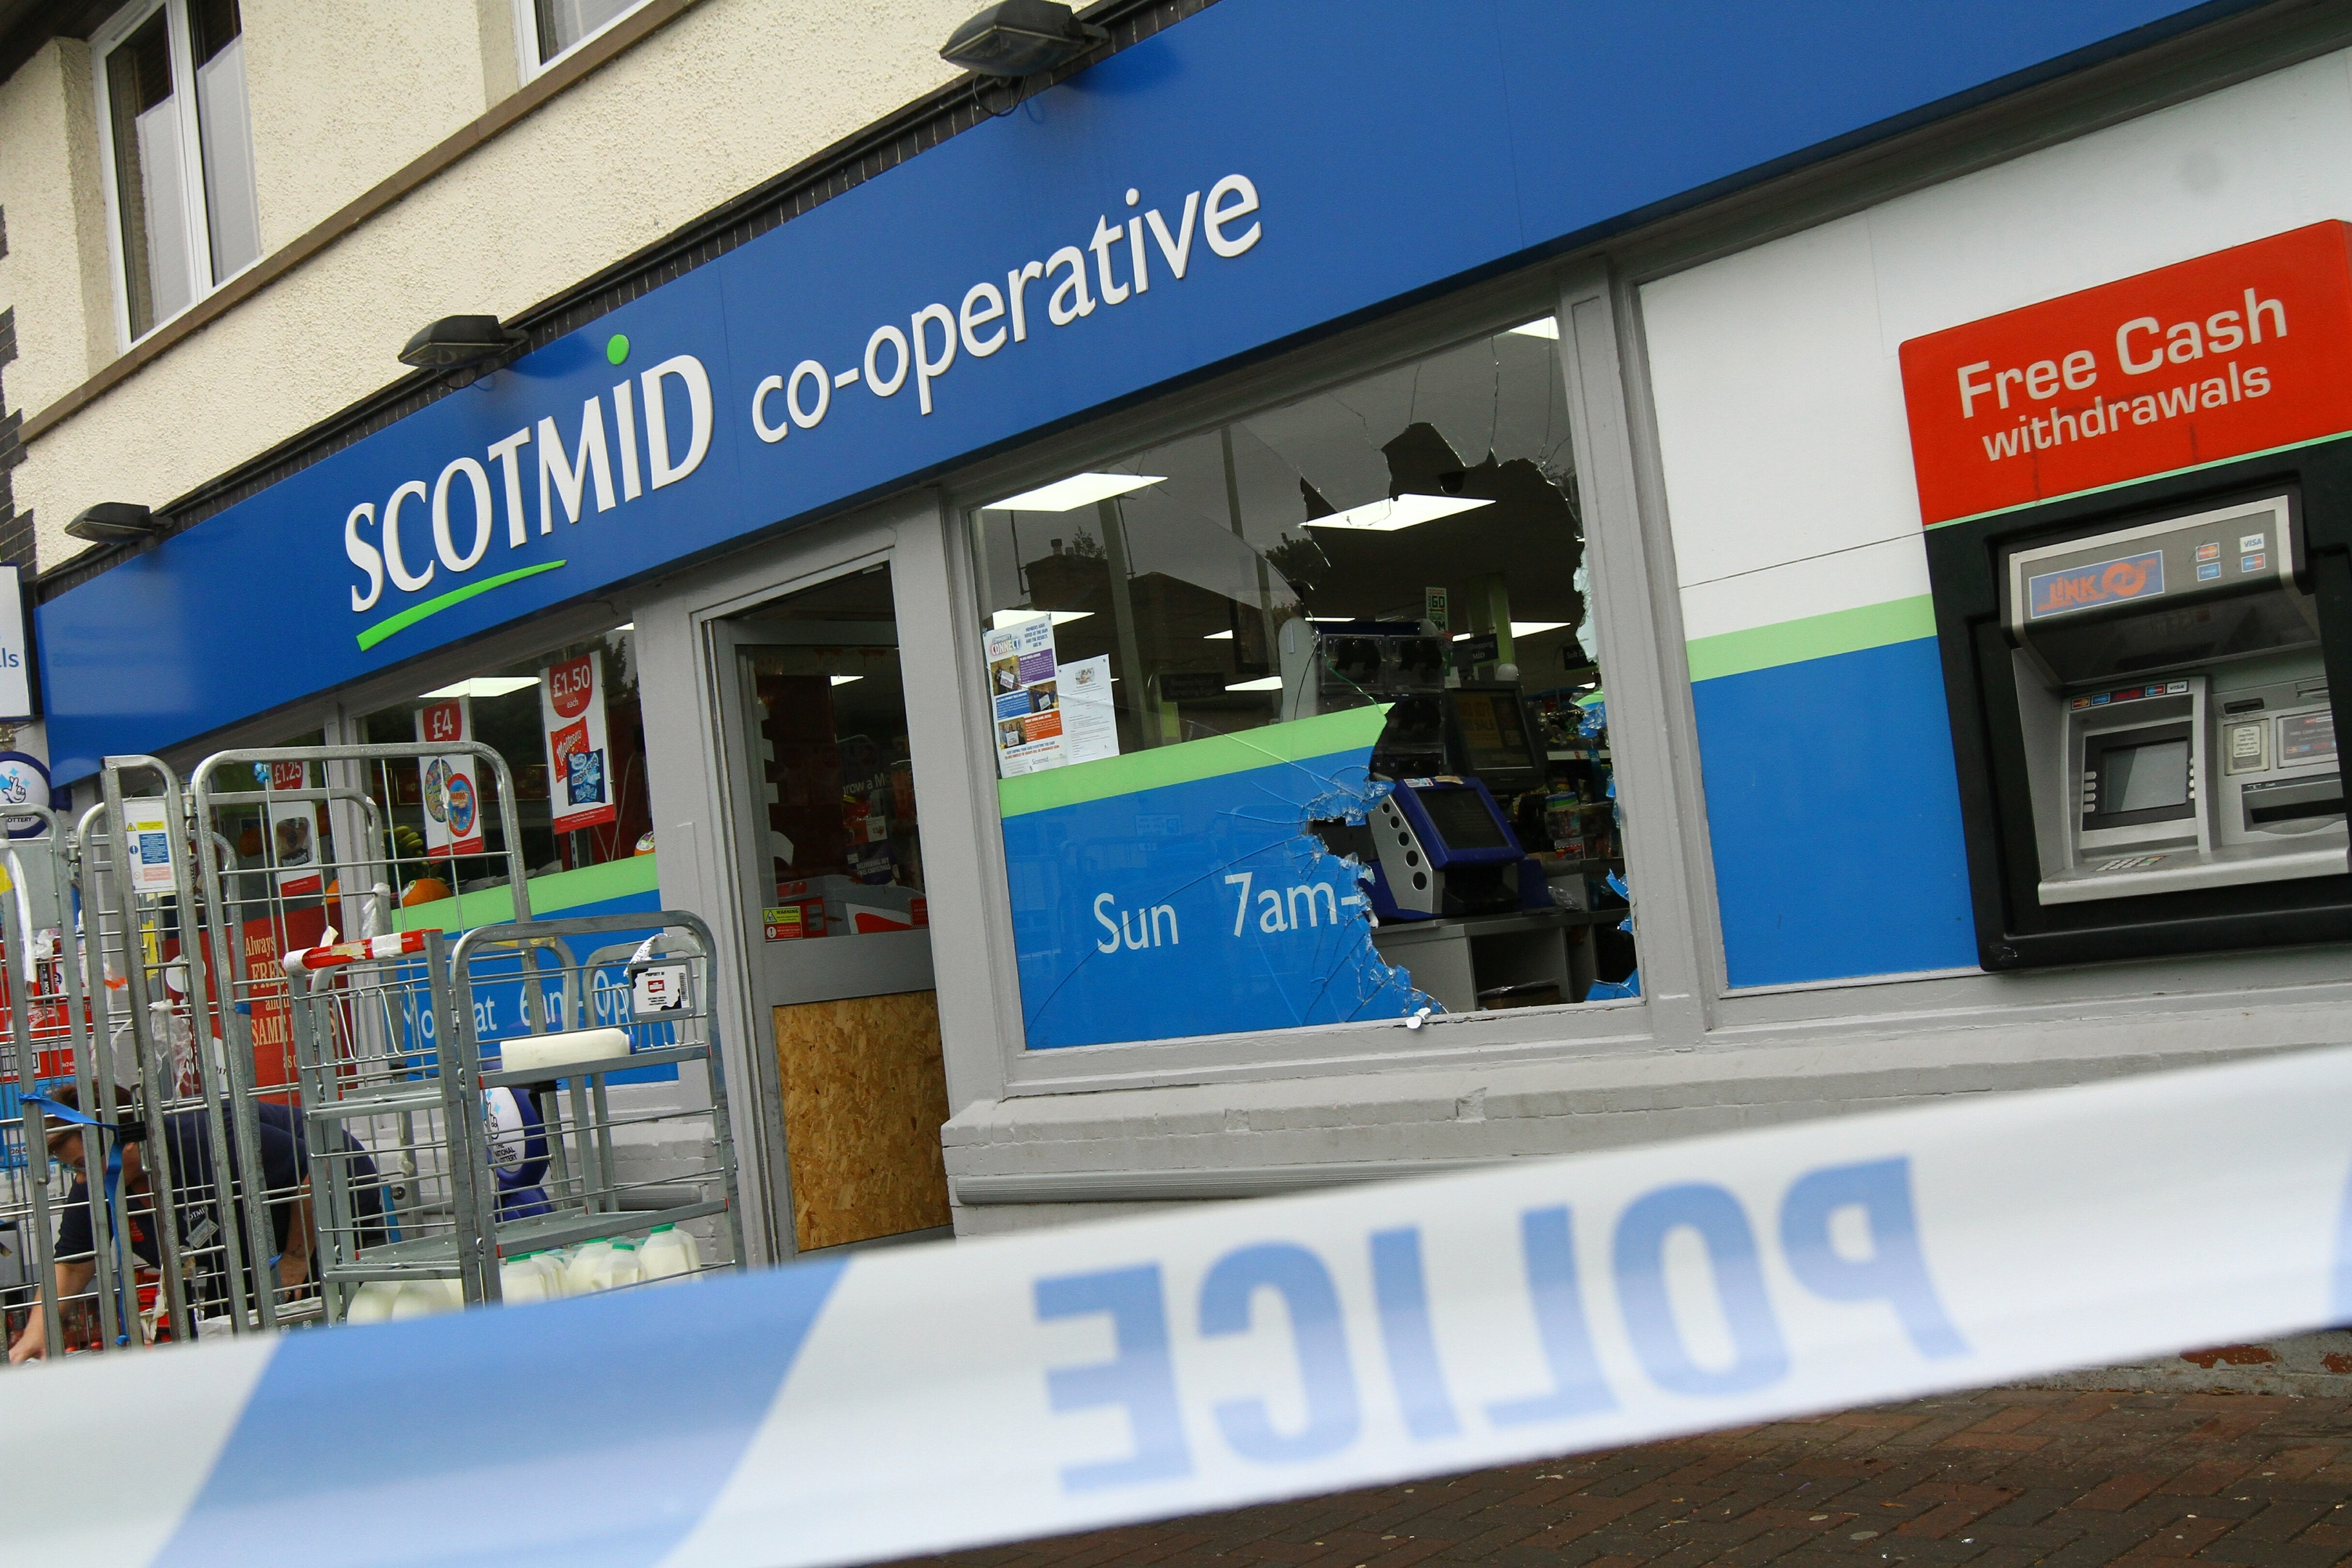 Scotmid on Invergowrie Main Street, which has been broken into again.